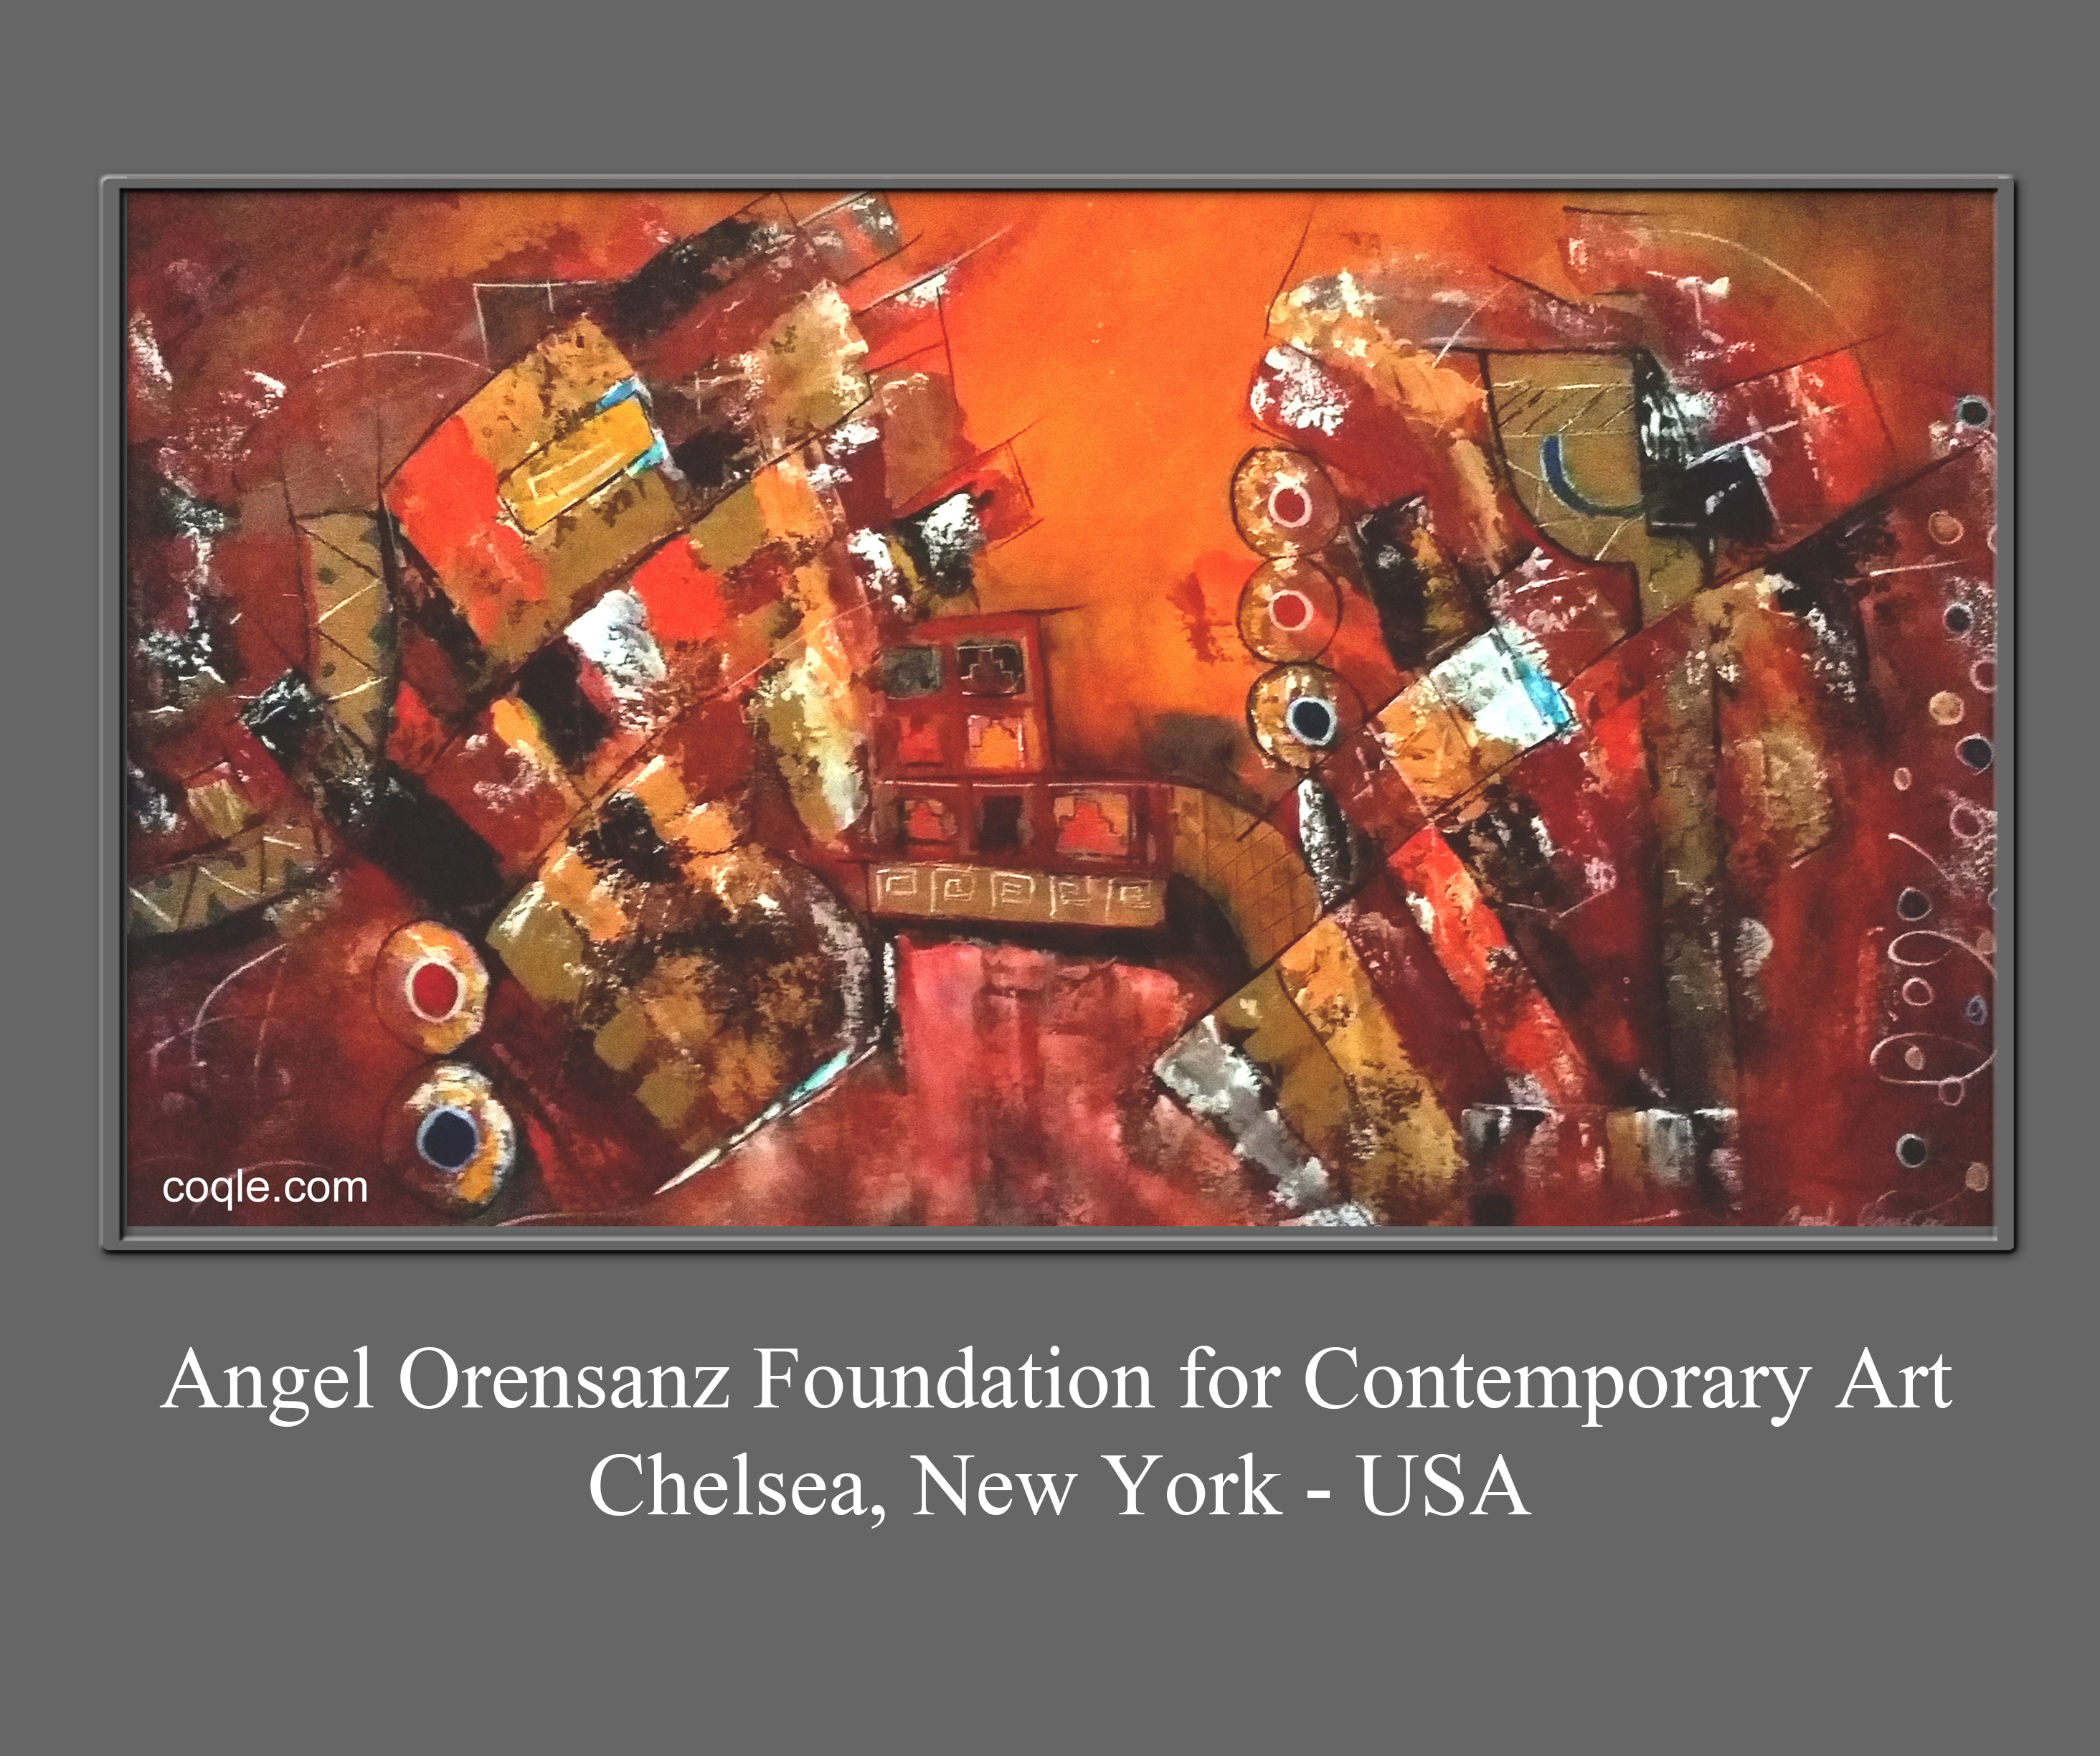 Angel Orensanz Foundation